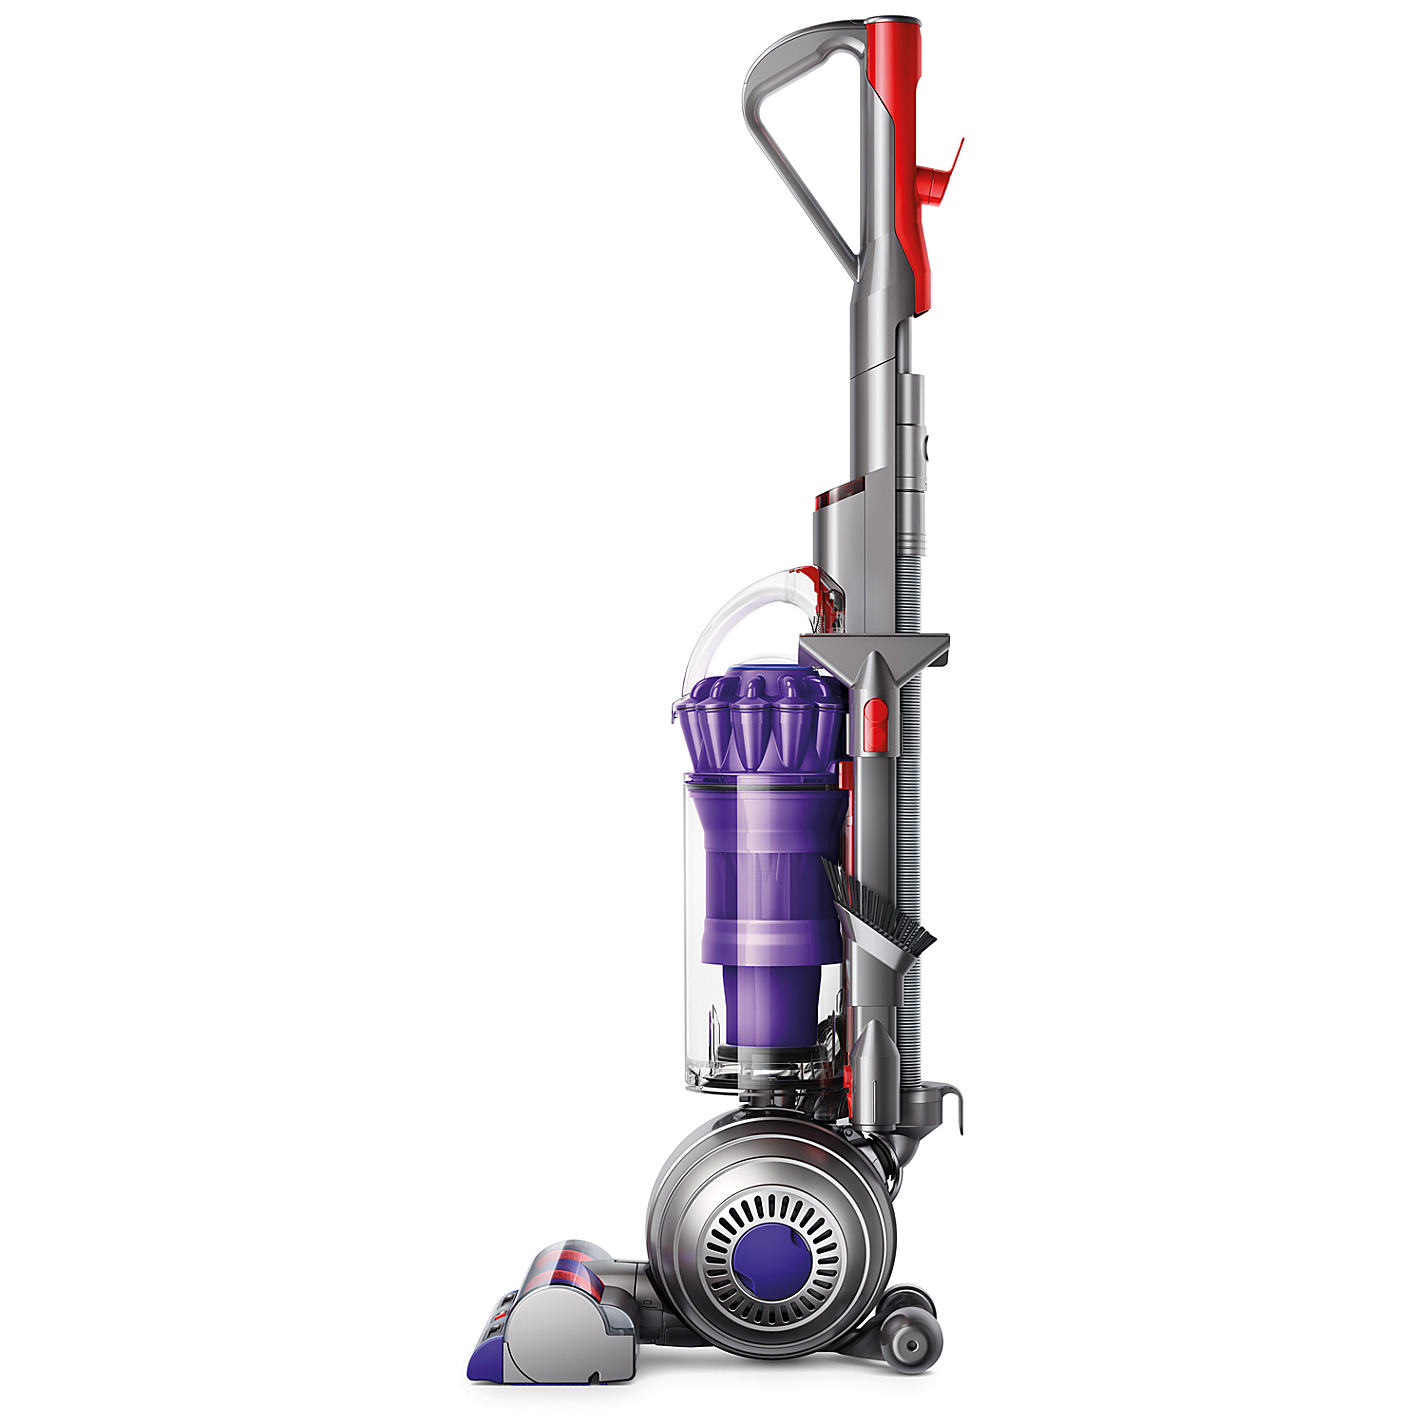 Pet hair vacuum cleaner south africa picture 1 of 3 upright vacuum bissell pet hair eraser - Choosing a vacuum cleaner ...